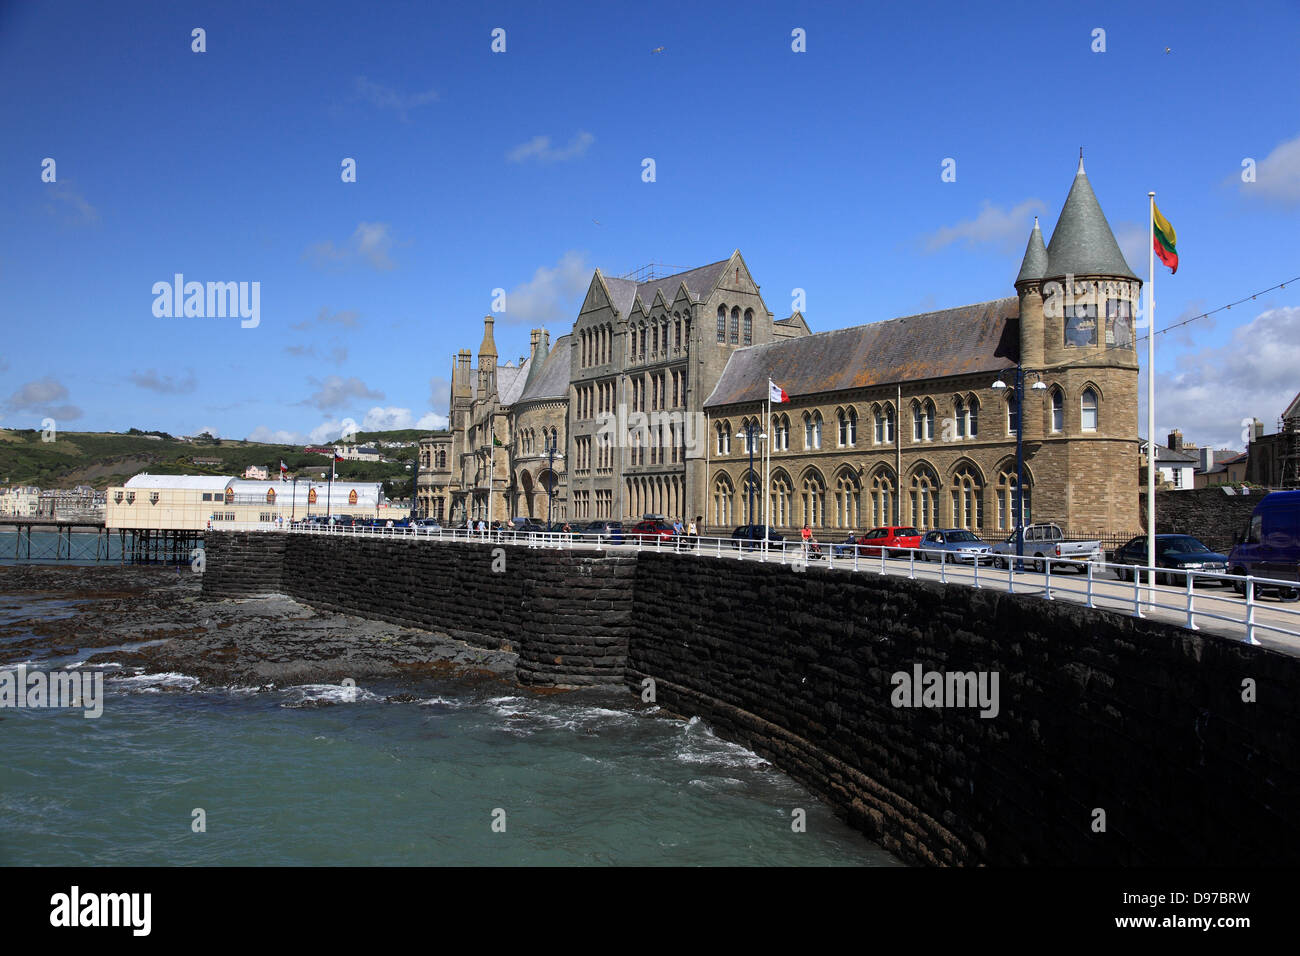 Old College, Aberystwyth, built in 1865, now just part of the University, and the pier, also built in 1865 - Stock Image